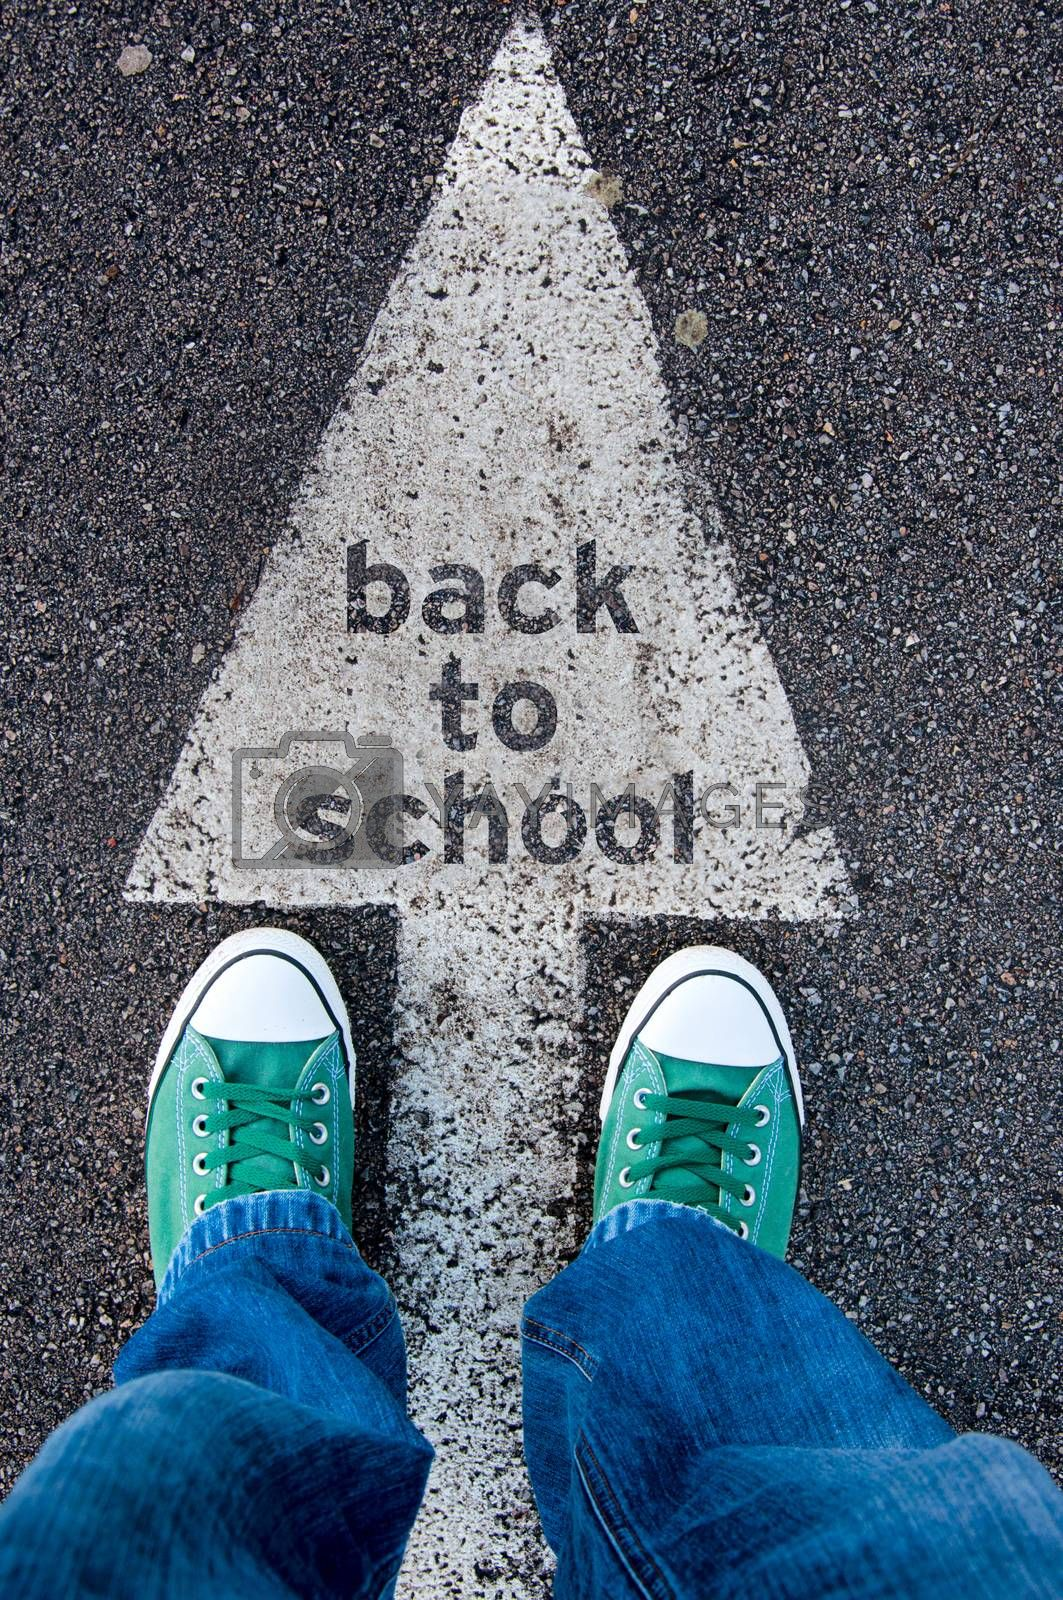 Student standing above the sign back to school